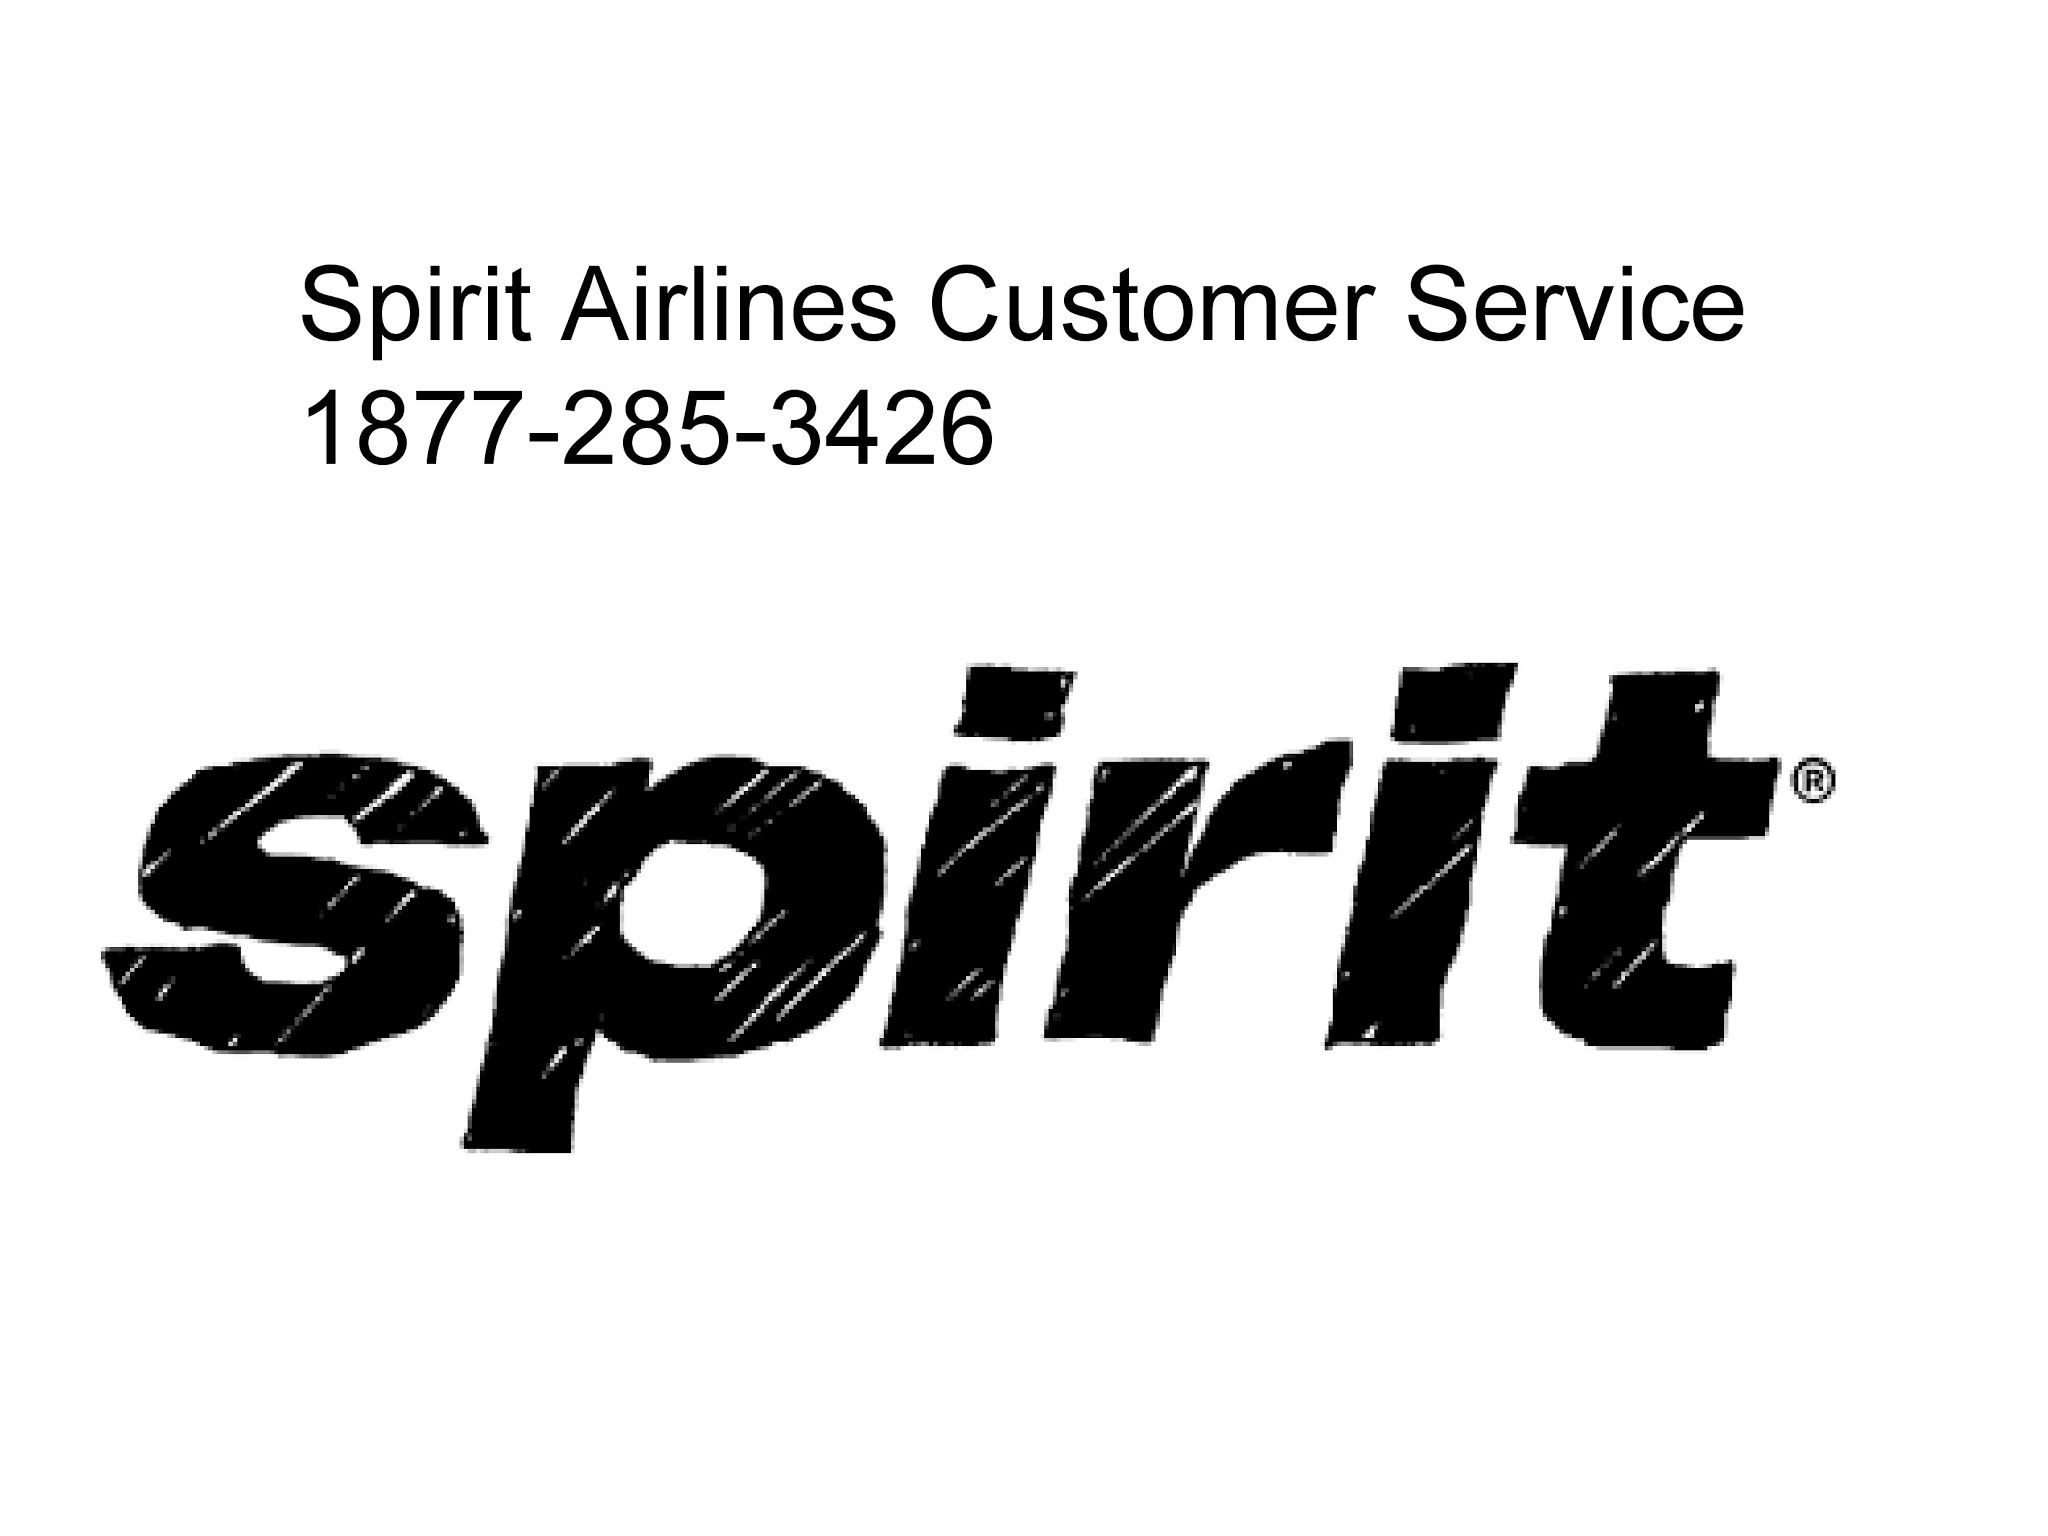 How do I speak to a live person at Spirit Airlines? If you